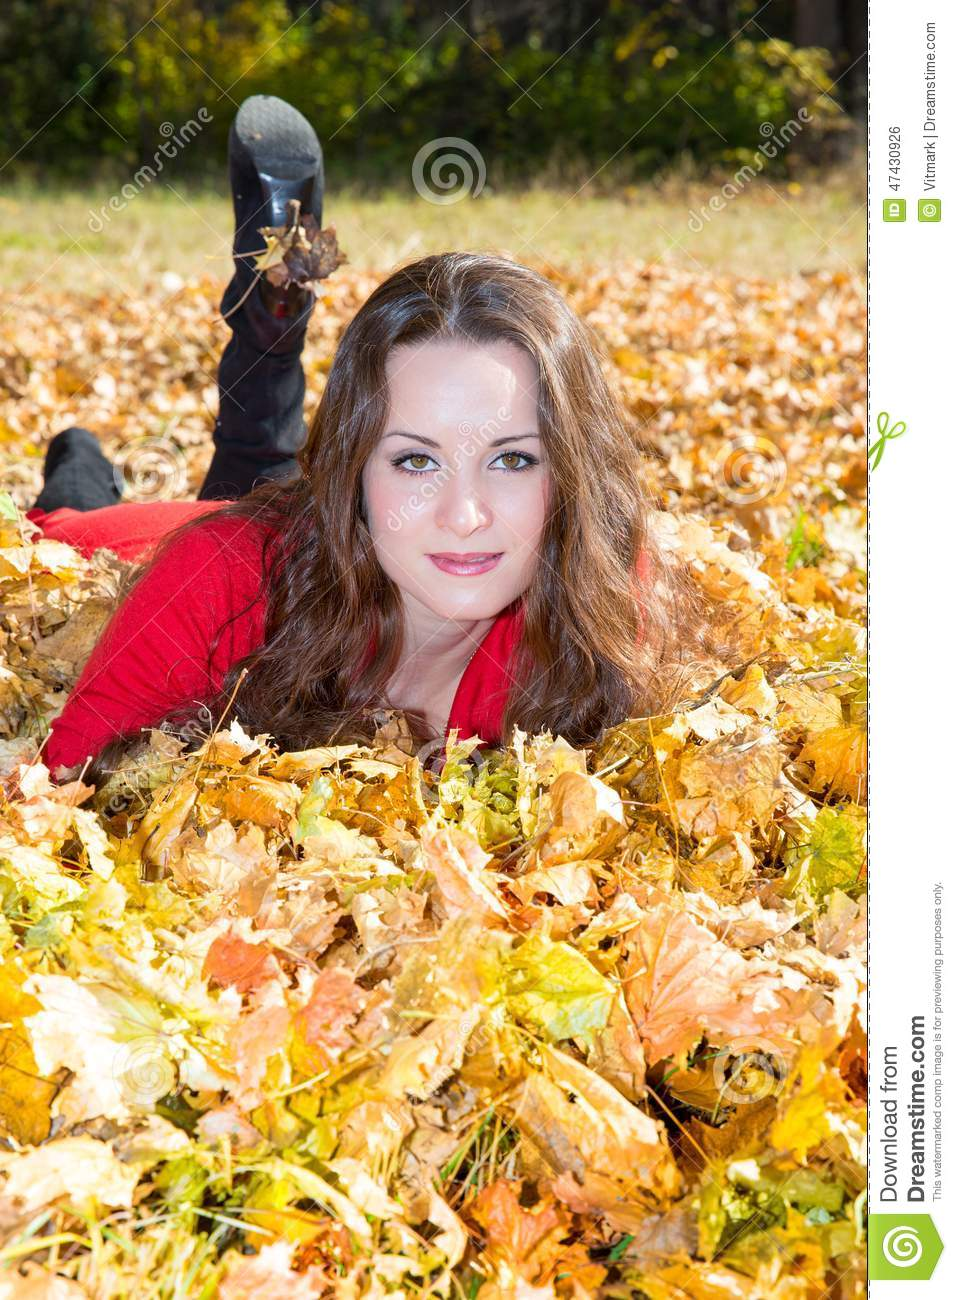 Fall. Portrait of beautiful young woman in autumn park with leaves